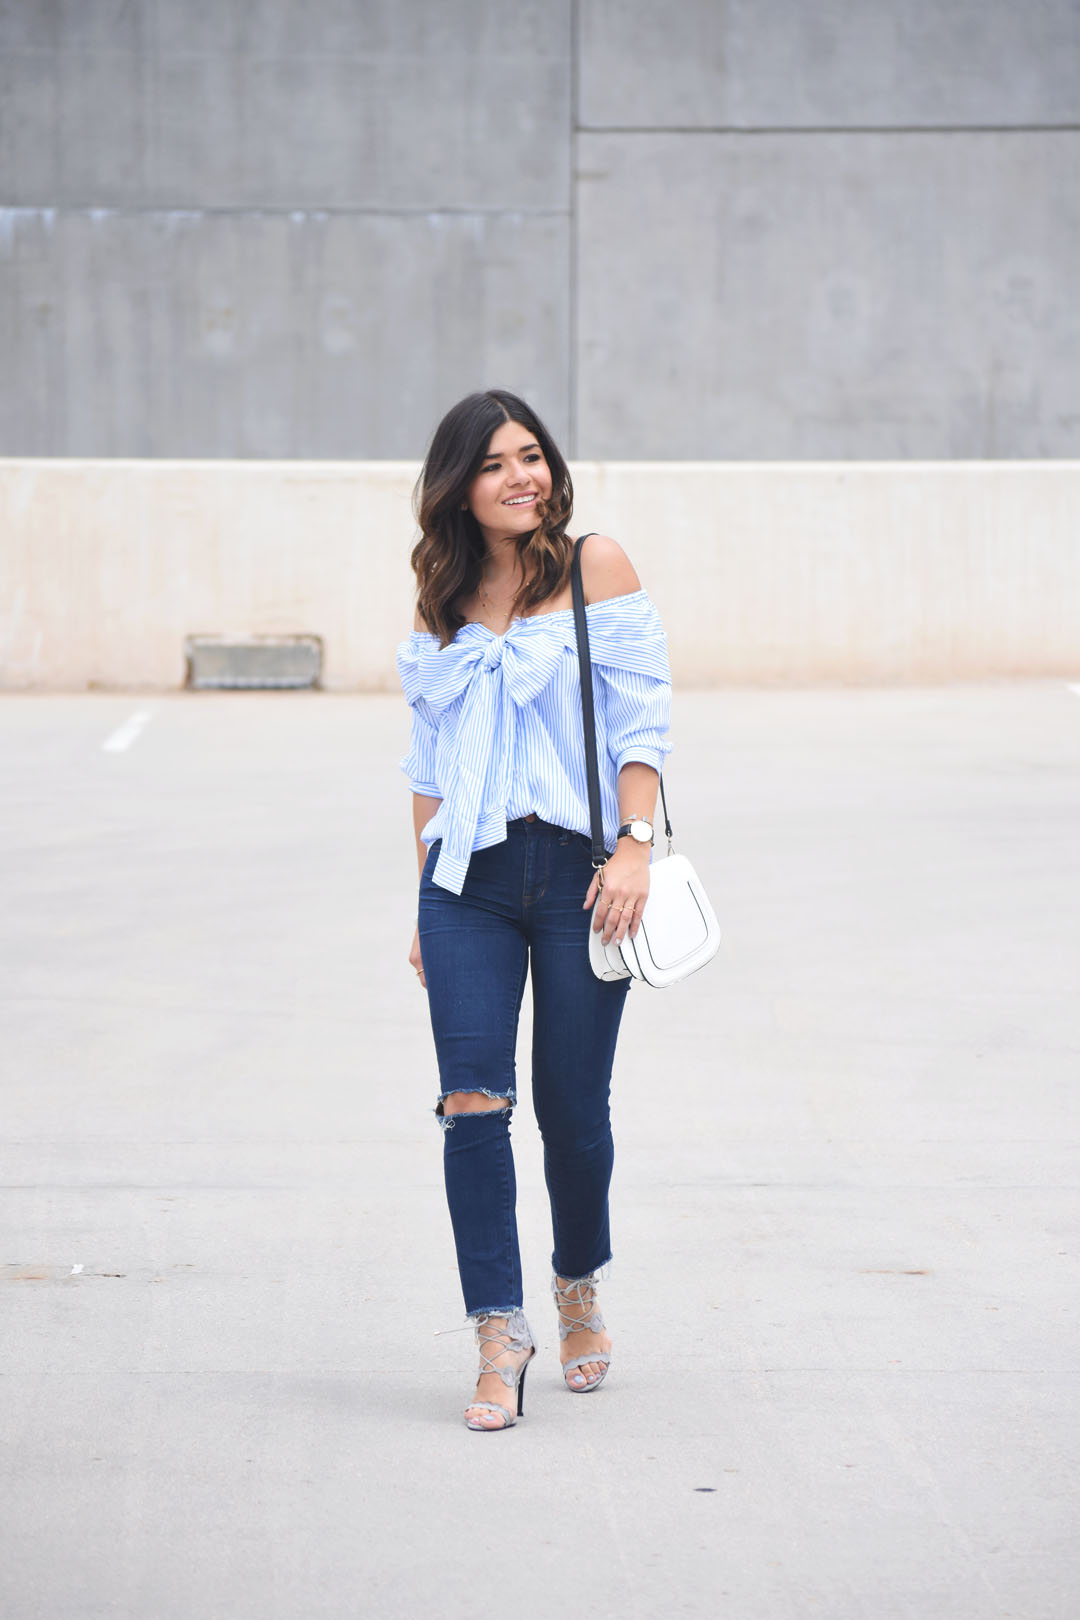 Carolina Hellal of Chic Talk wearing a tie front off the shoulder top via SheIn, Madewell jeans, and grey lace up sandals via Public Desire.